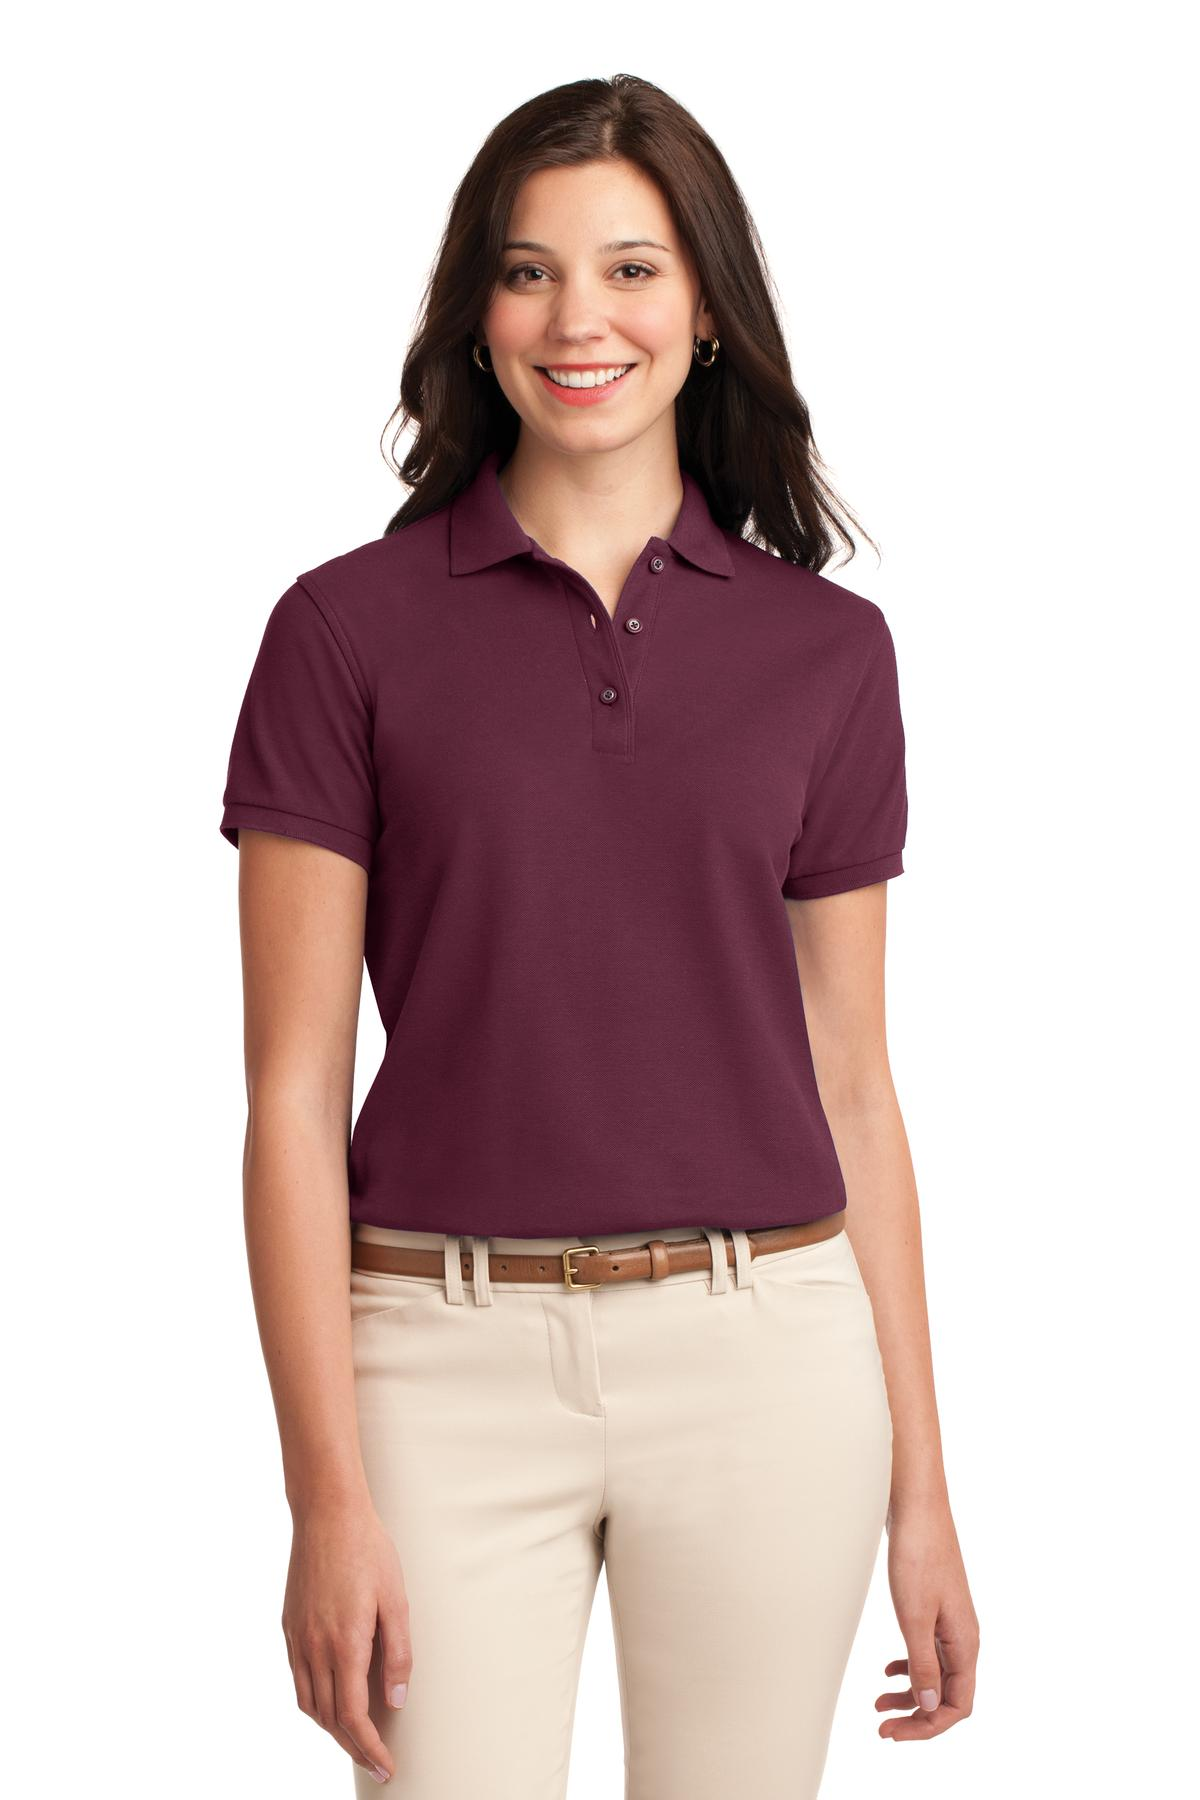 Burgundy Port Authority Ladies Silk Touch Polo.